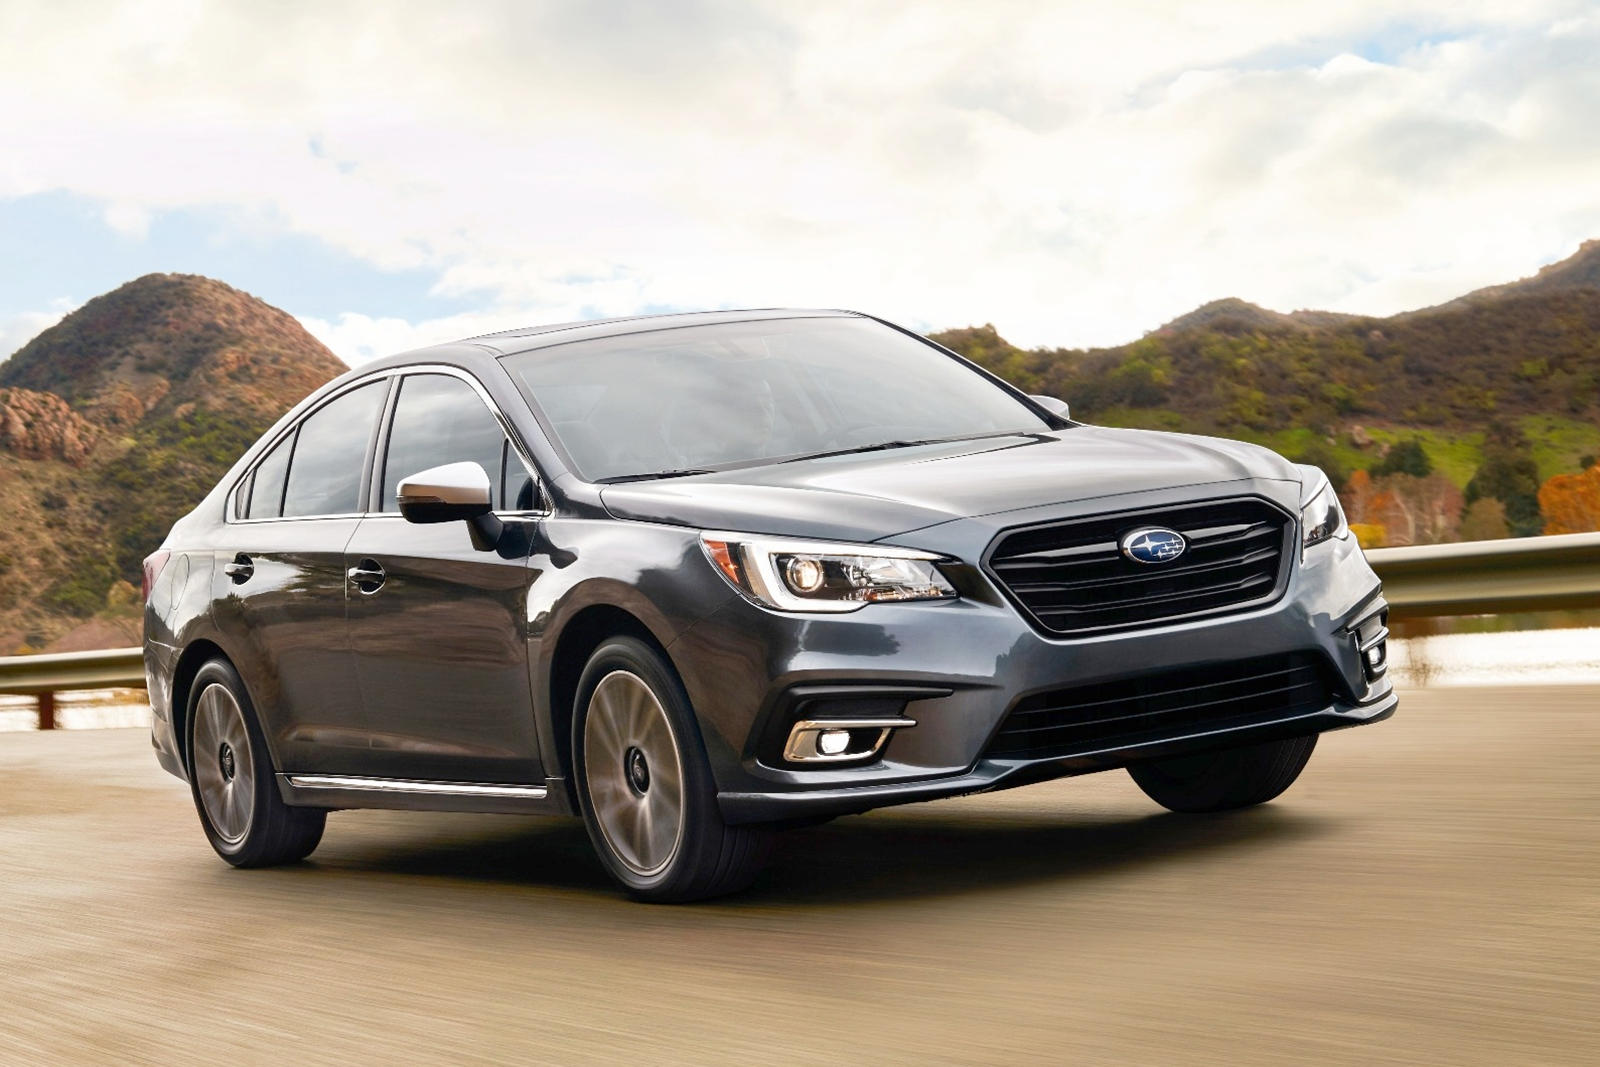 2018-2020 Subaru Legacy Front View Driving